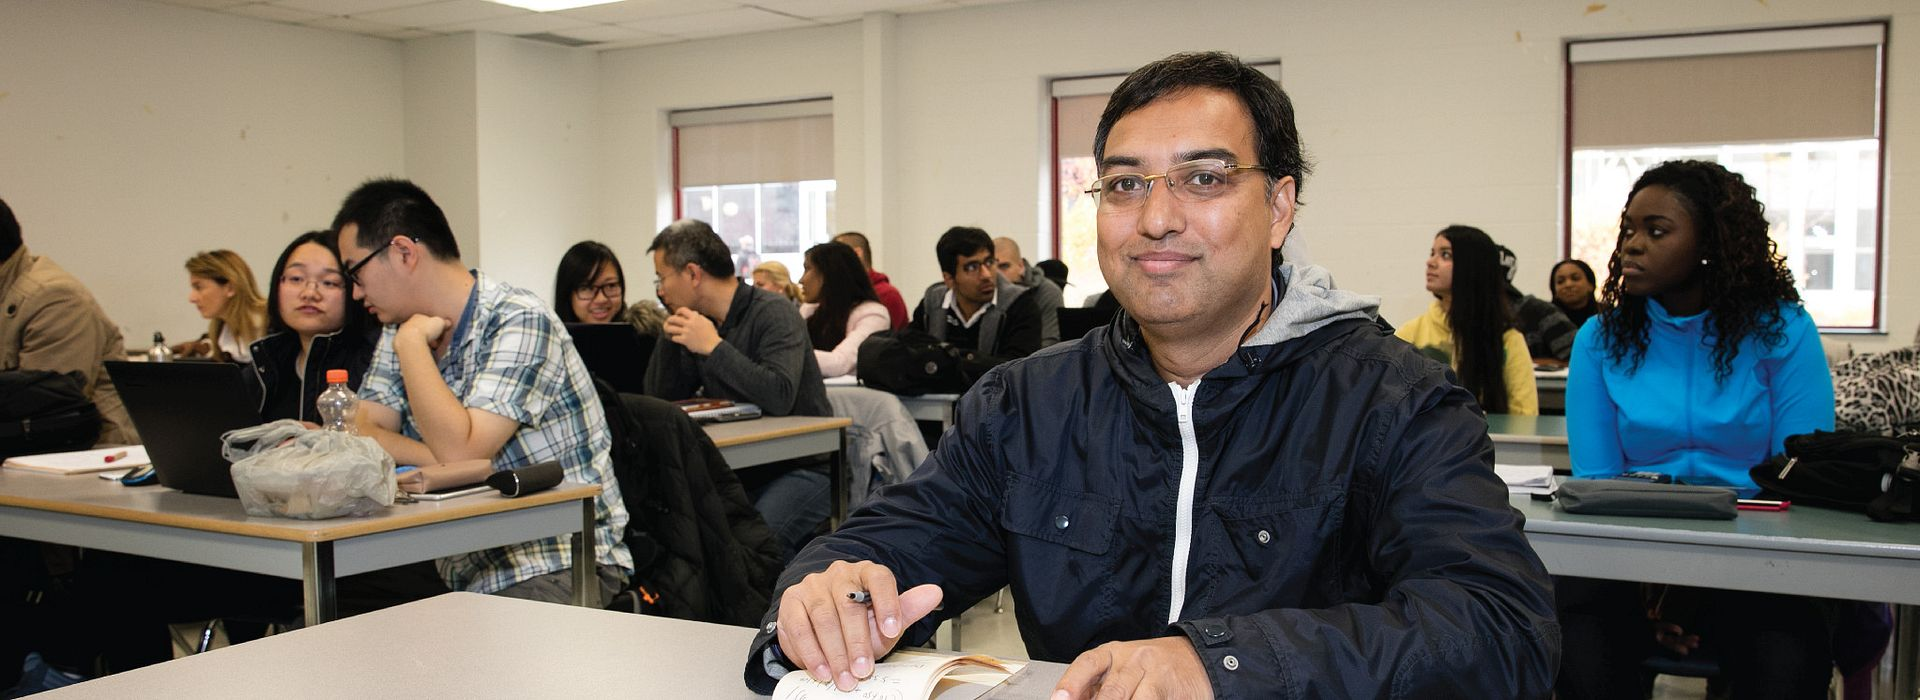 picture of a centennial college part-time studies student in class